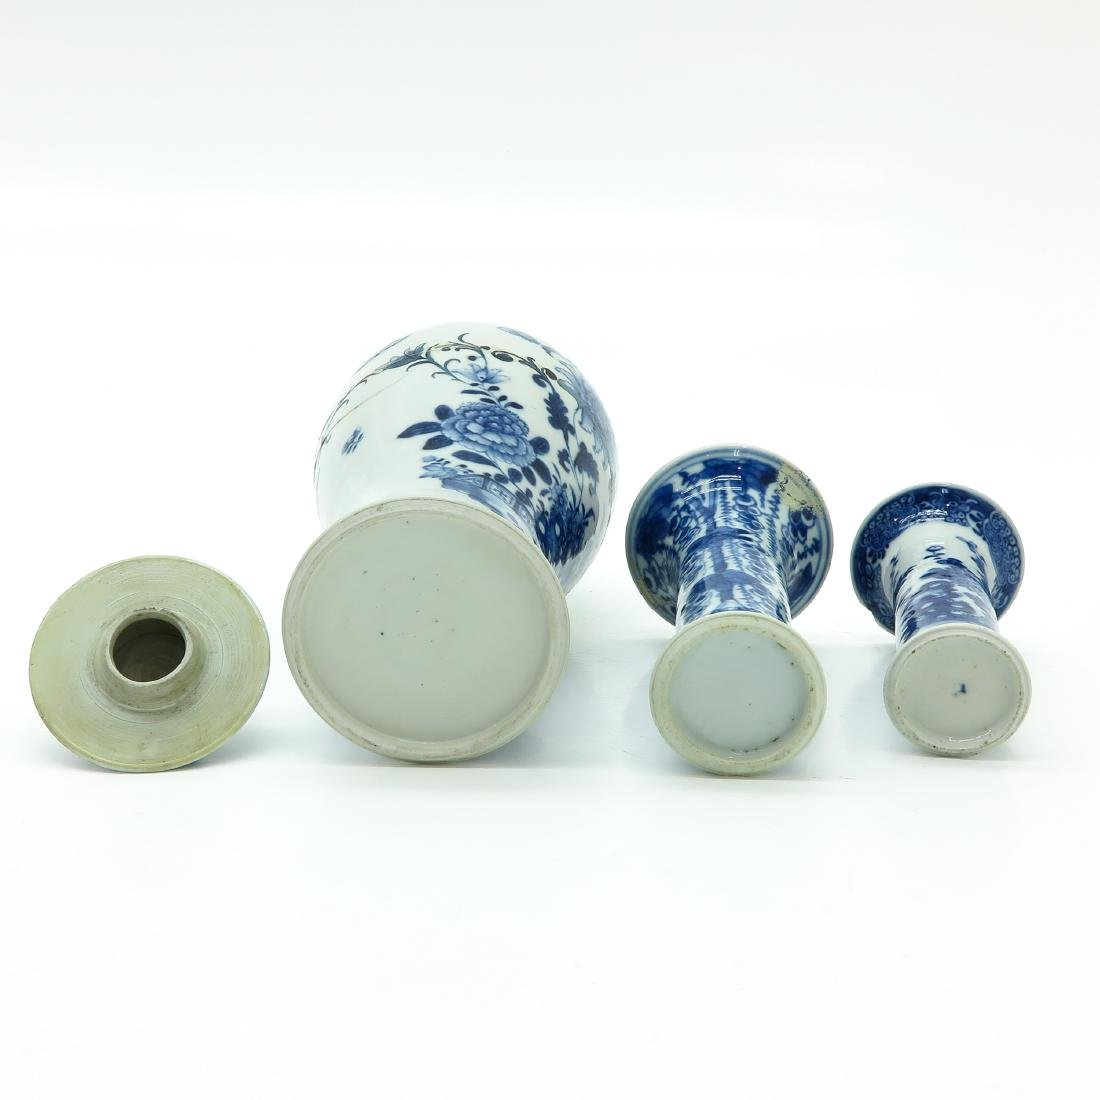 Lot of 3 Blue and White Vases - 6